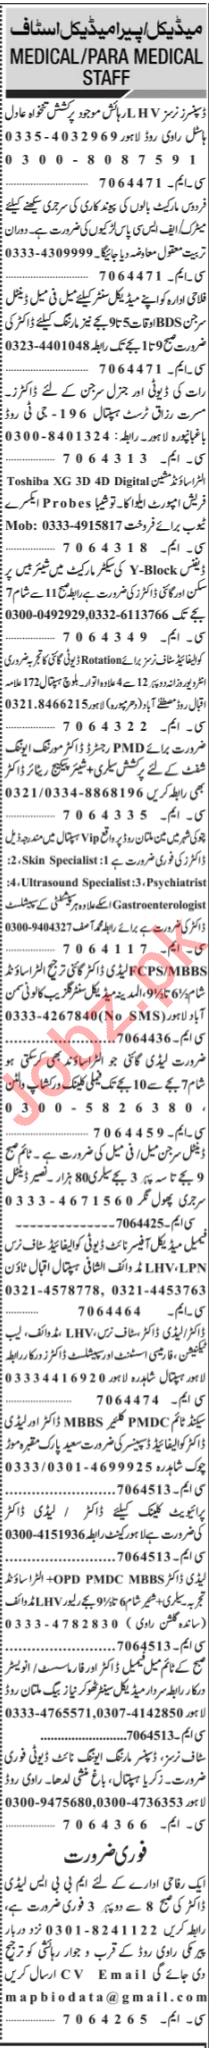 Jang Sunday Classified Ads 14th April 2019 for Paramedical